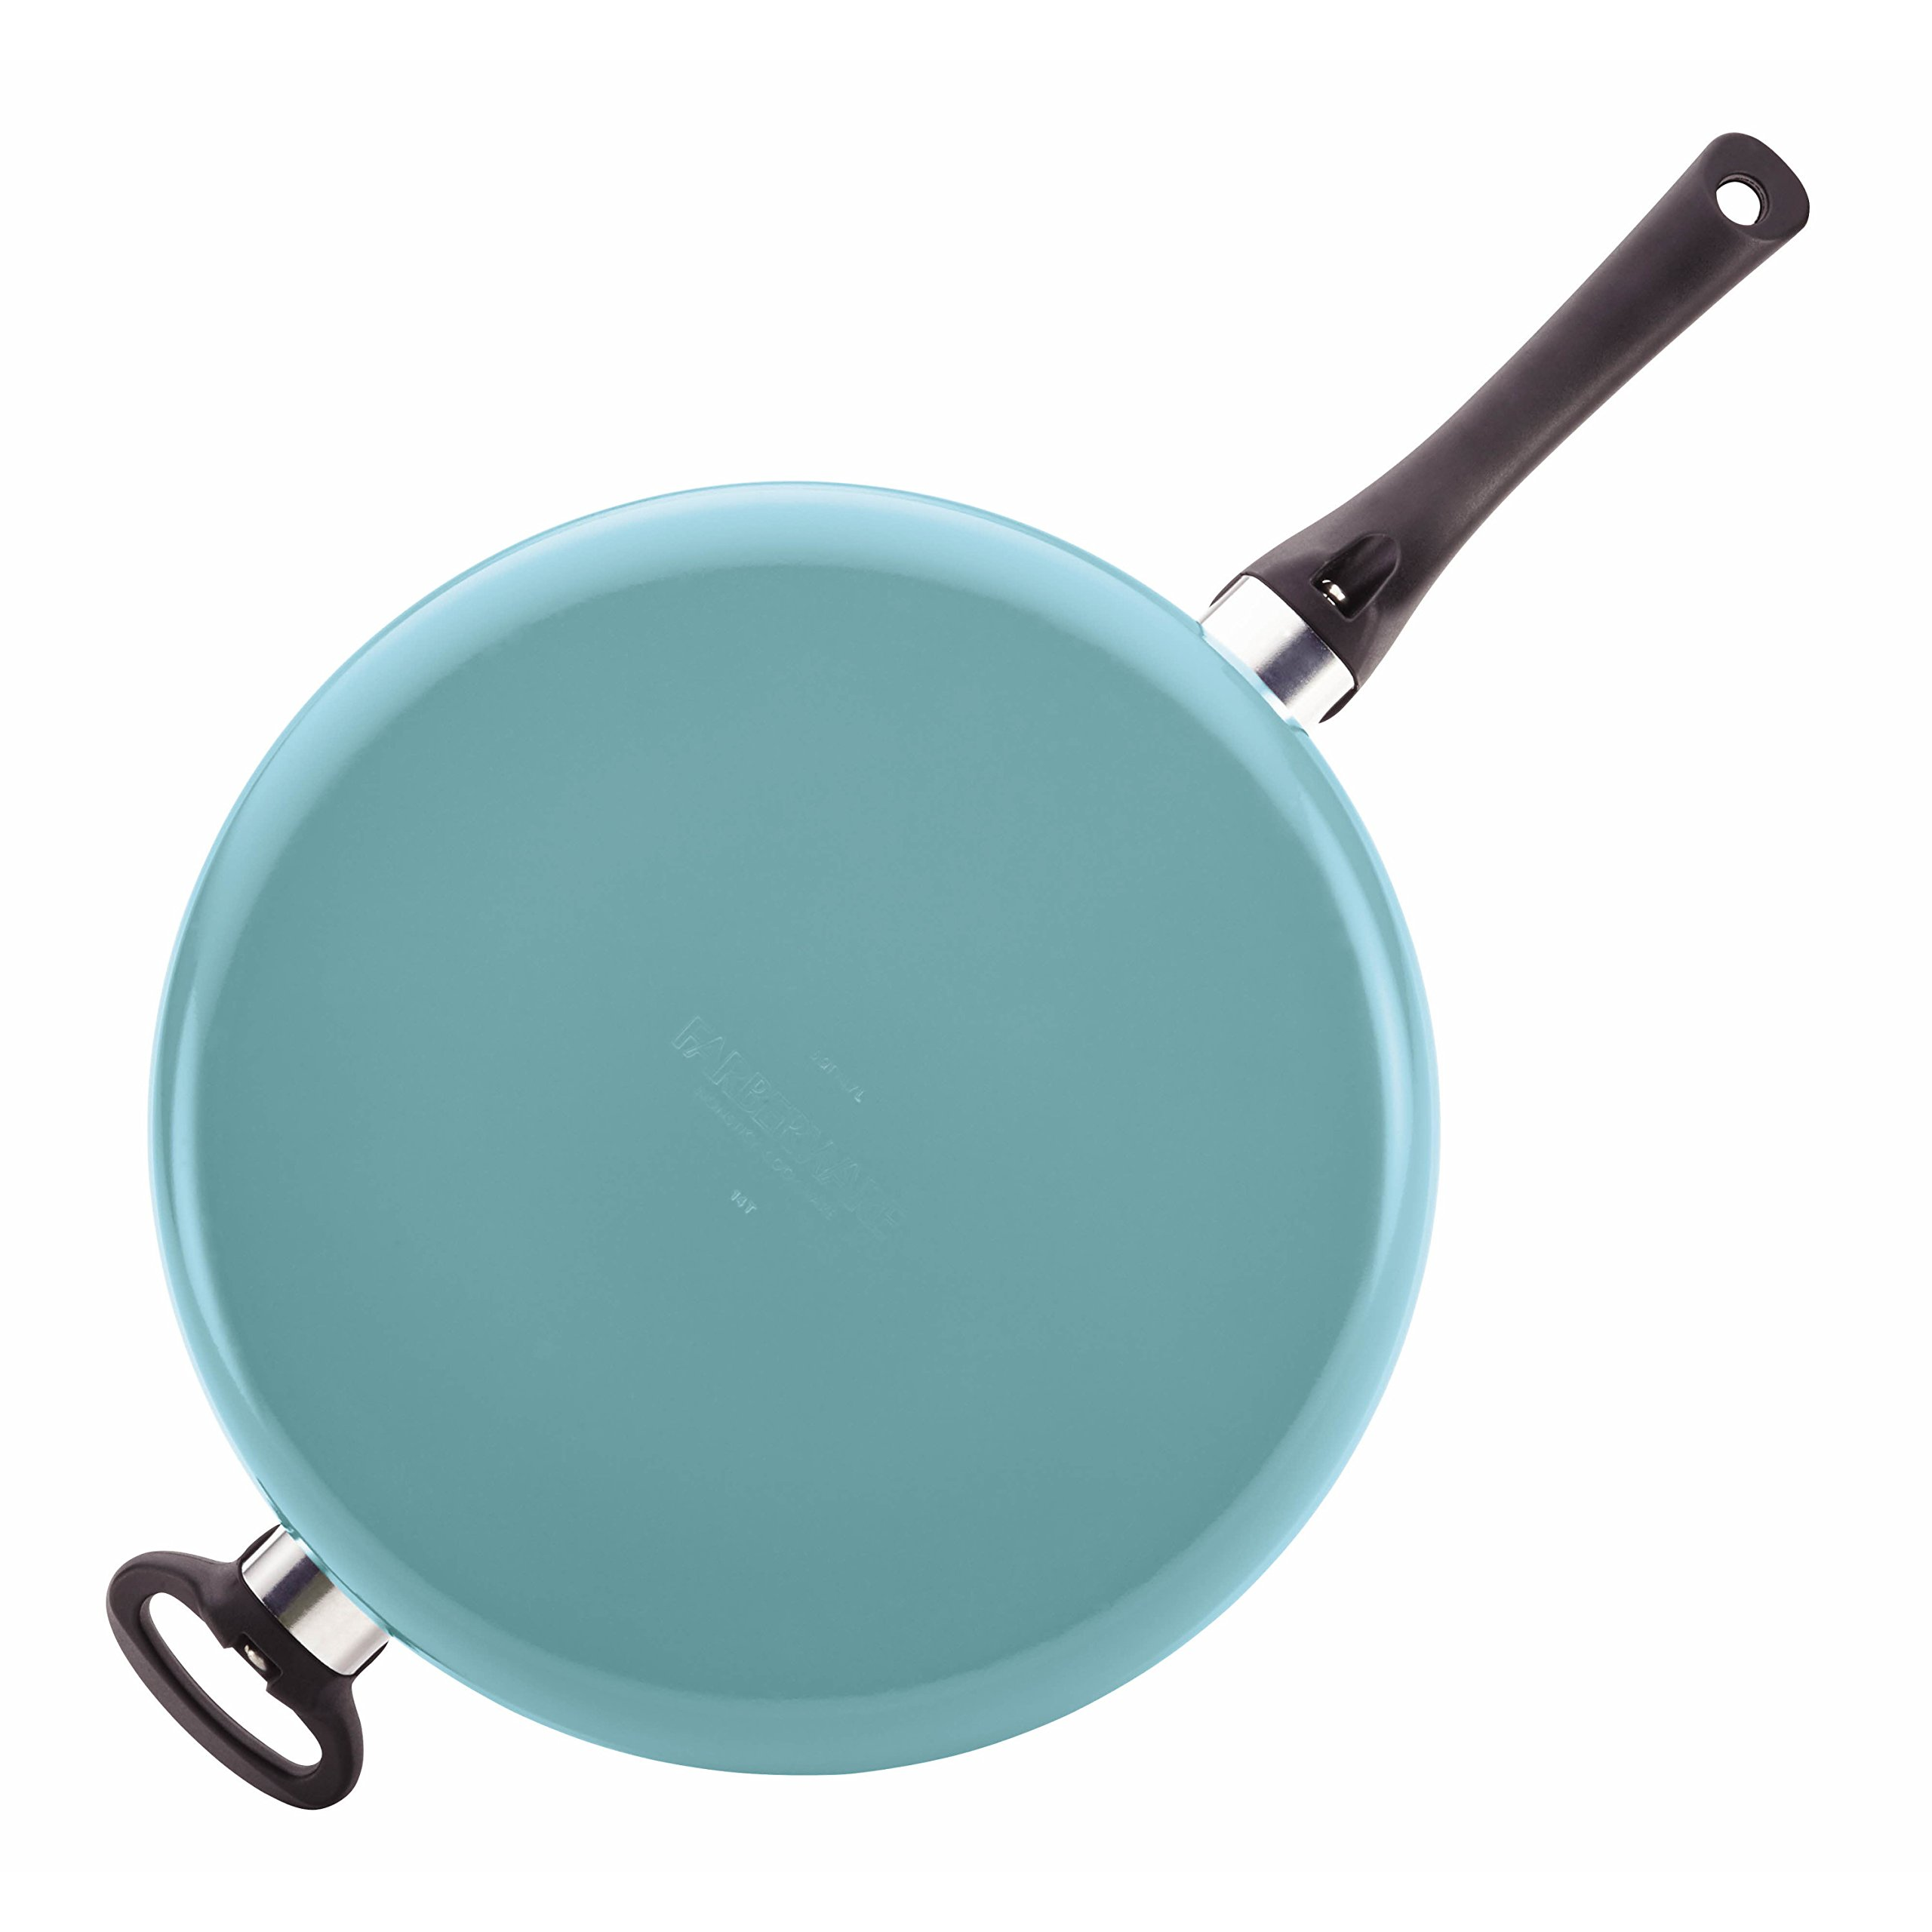 Farberware PURECOOK Ceramic Nonstick Cookware 5-Quart Covered Jumbo Cooker with Helper Handle, Aqua by Farberware (Image #5)